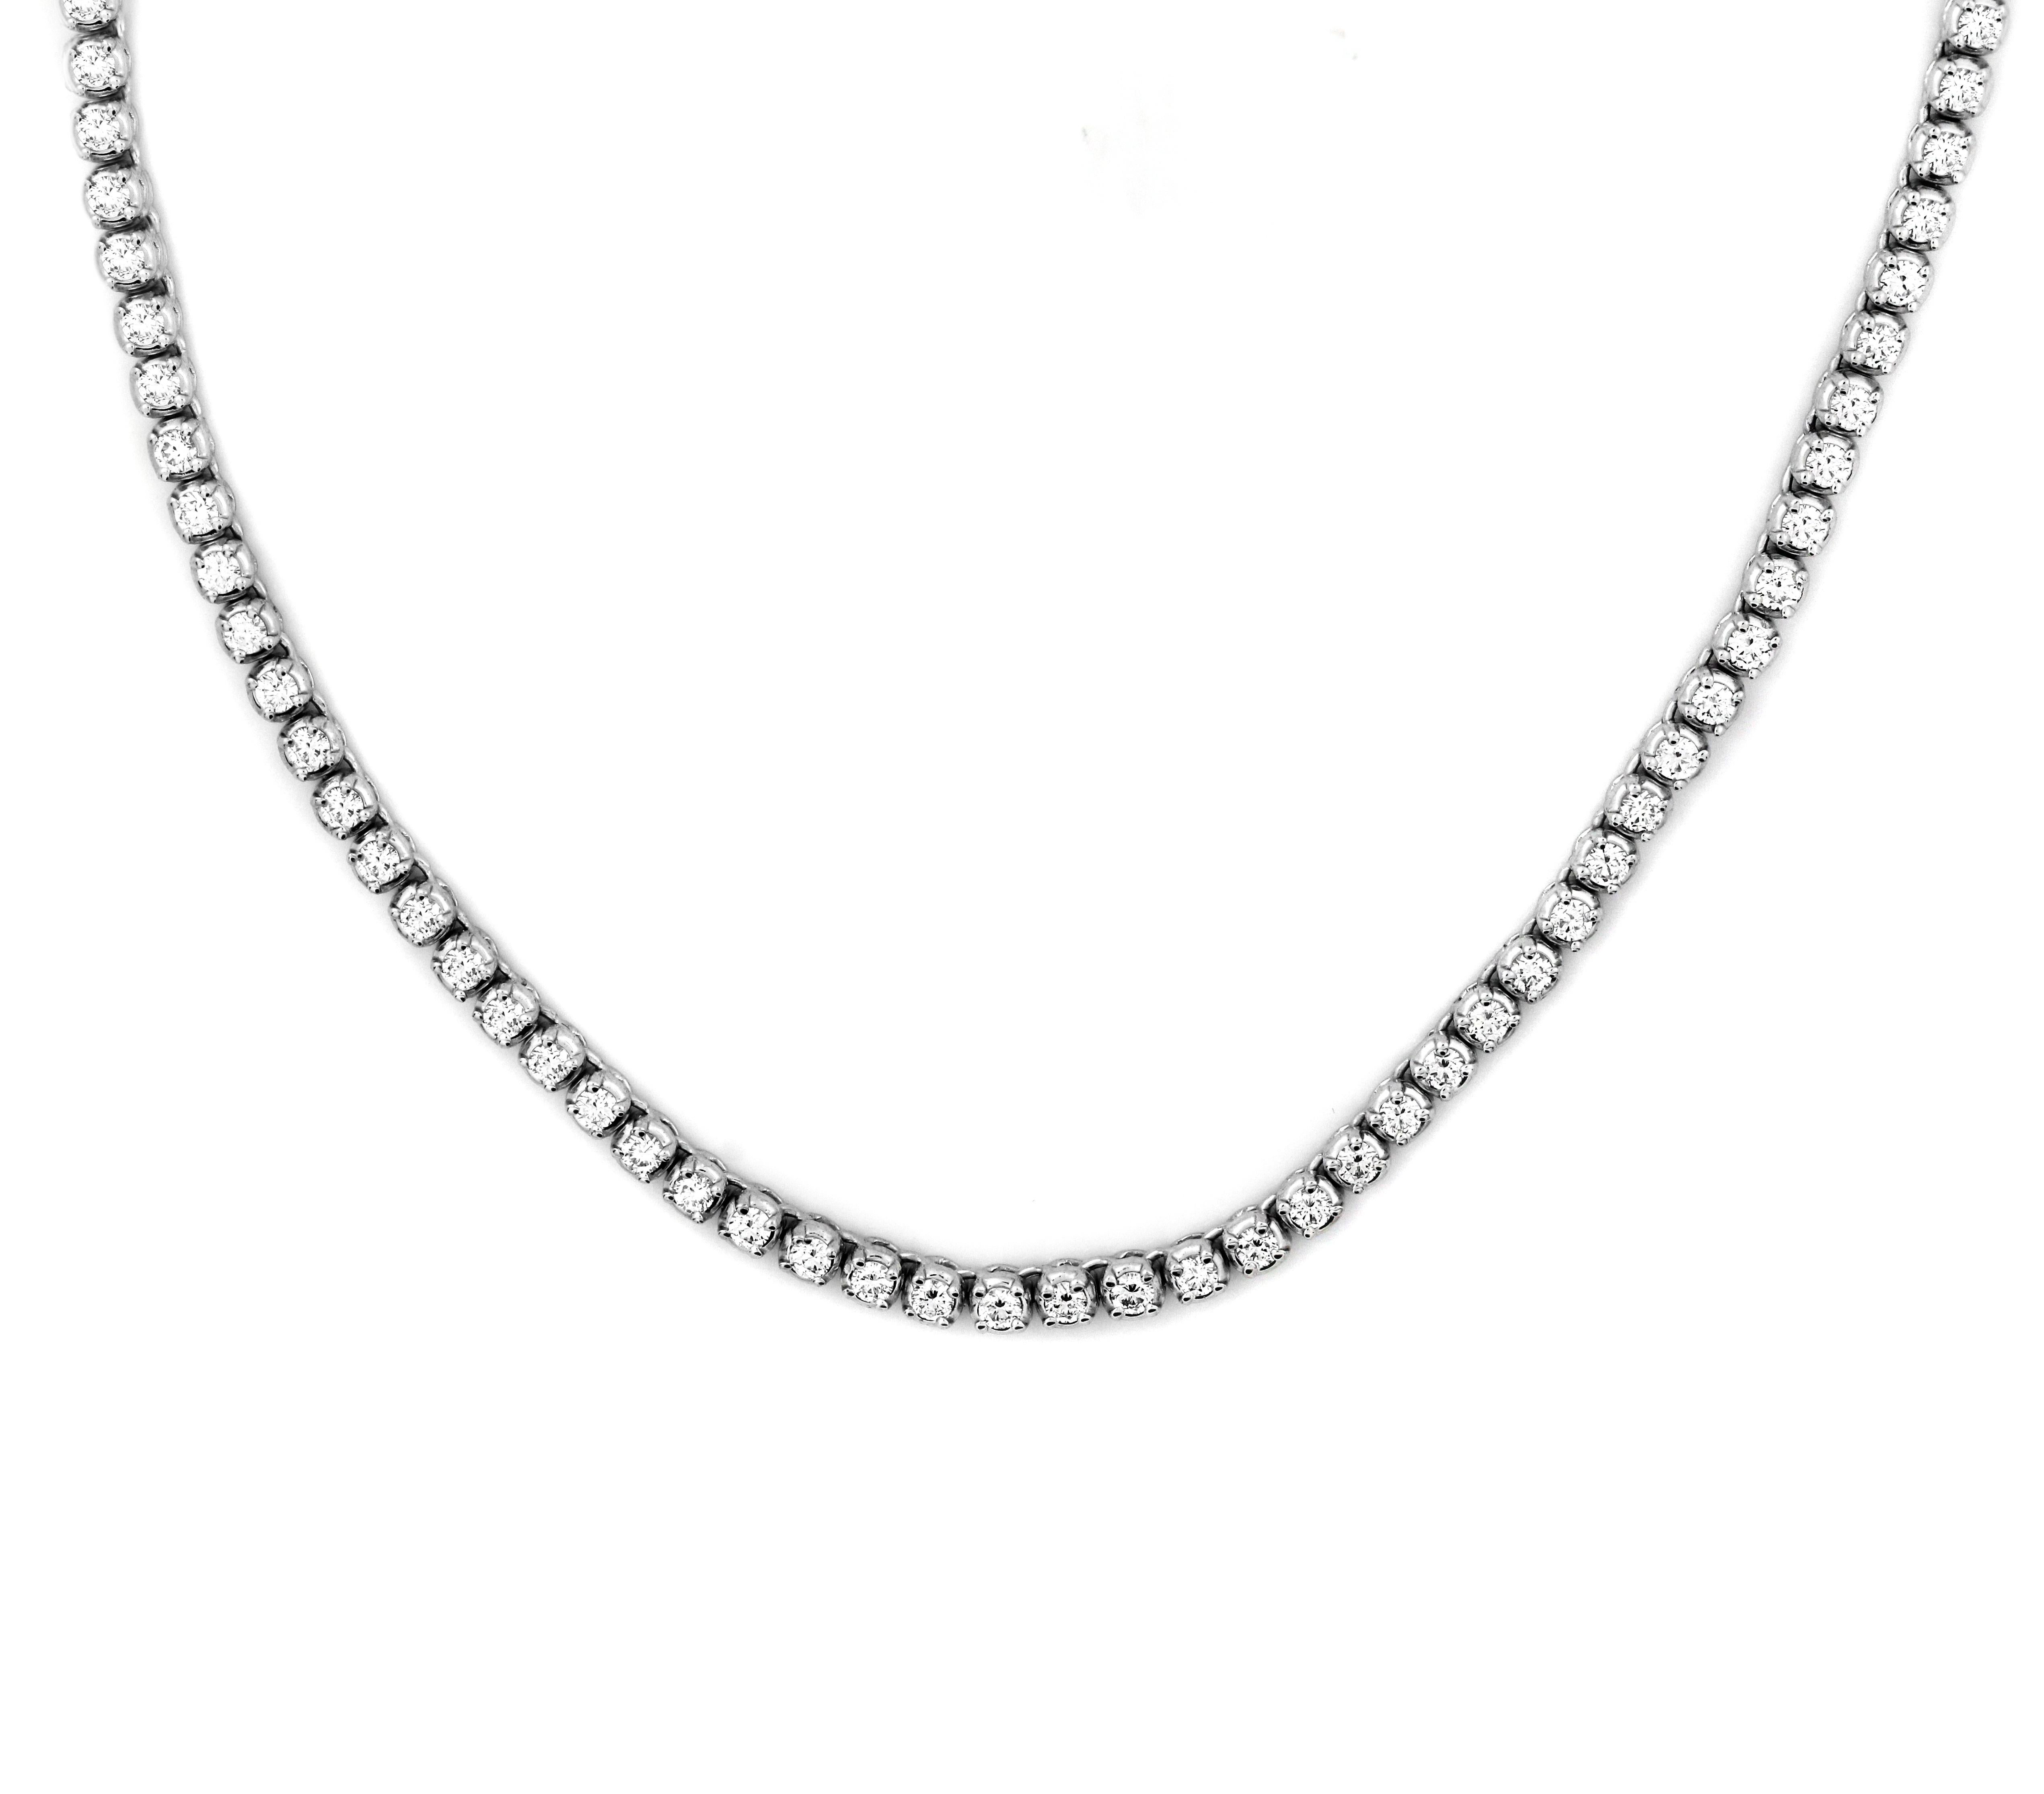 e8164b087dce36 Round Brilliant Diamond Tennis Necklace For Sale at 1stdibs